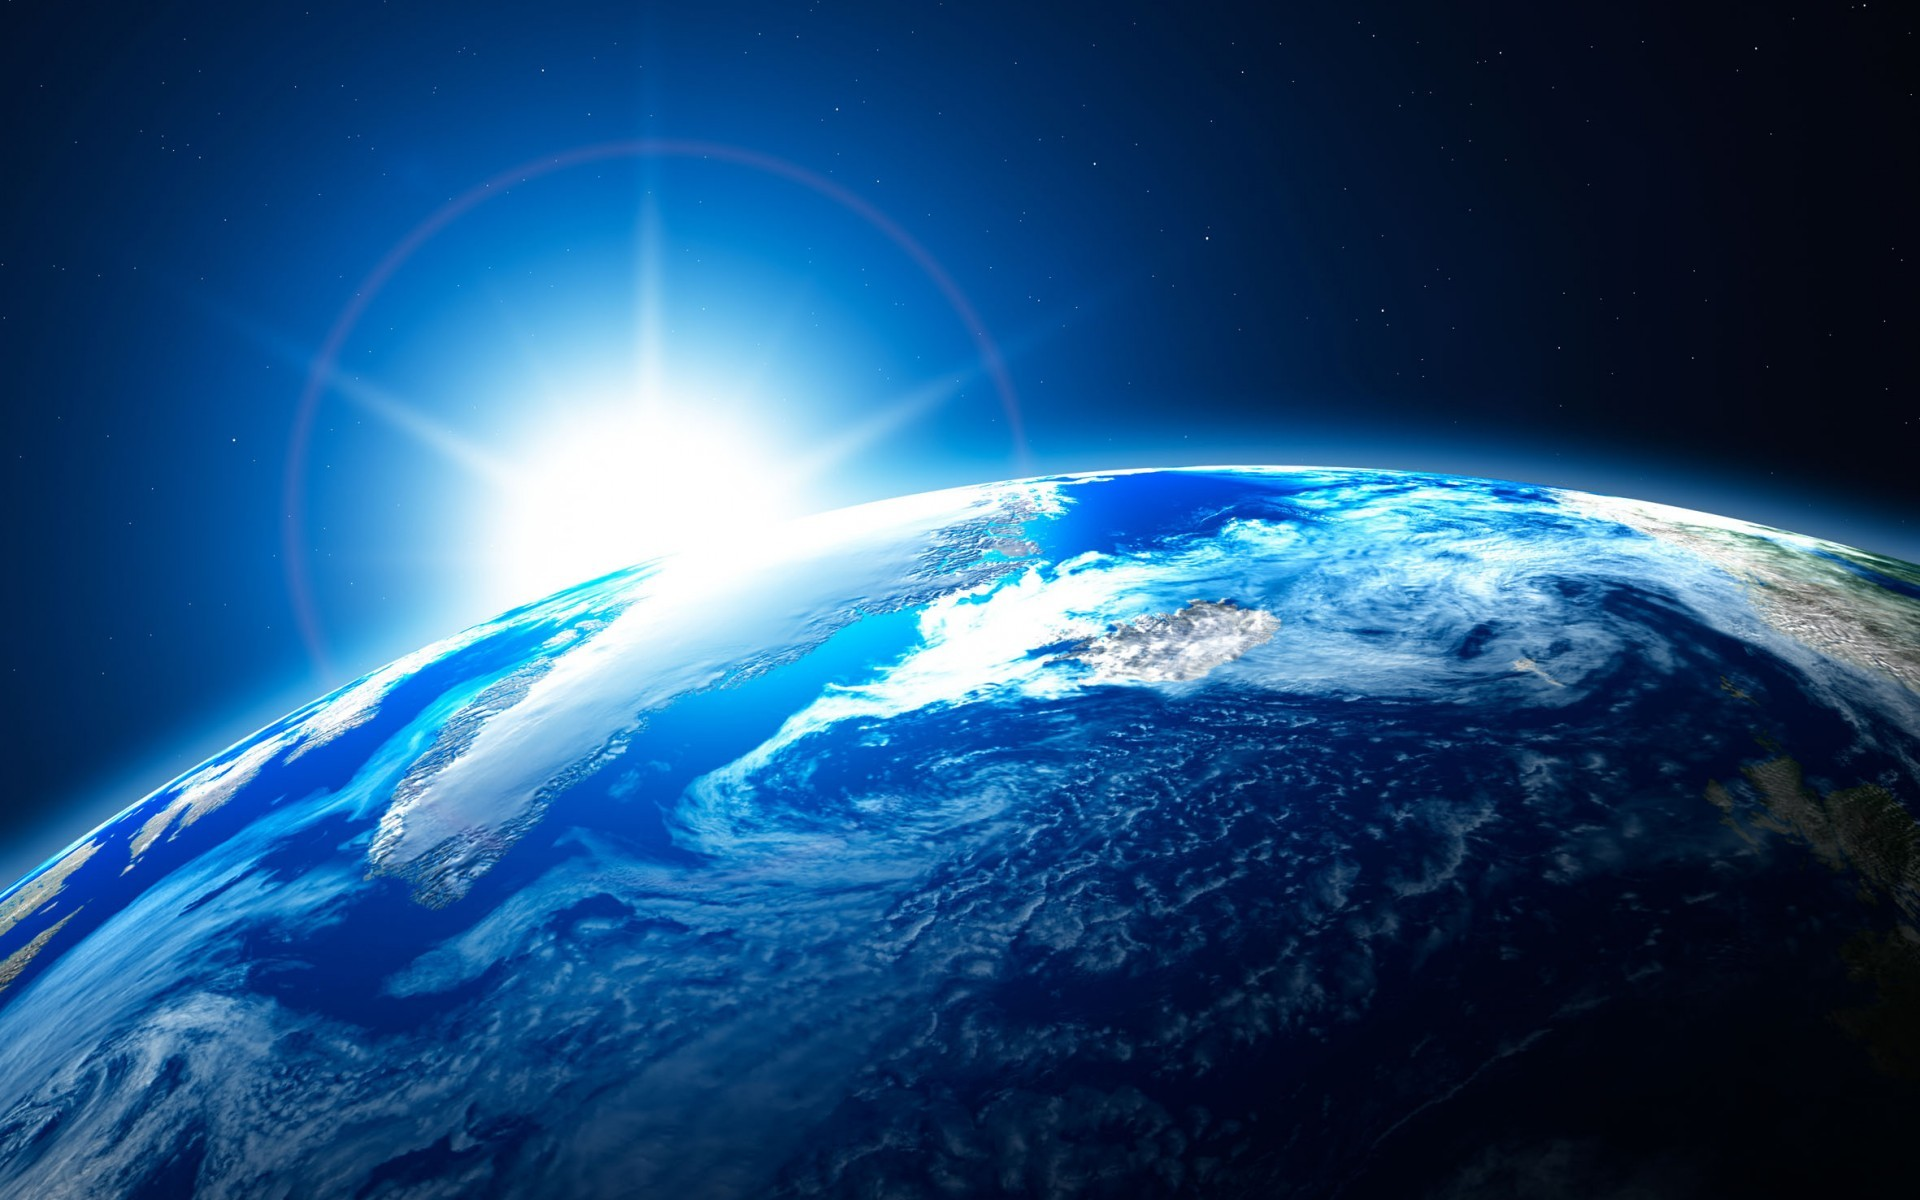 Earth Planet Space Wallpaper | wallpapers55.com – Best Wallpapers for .